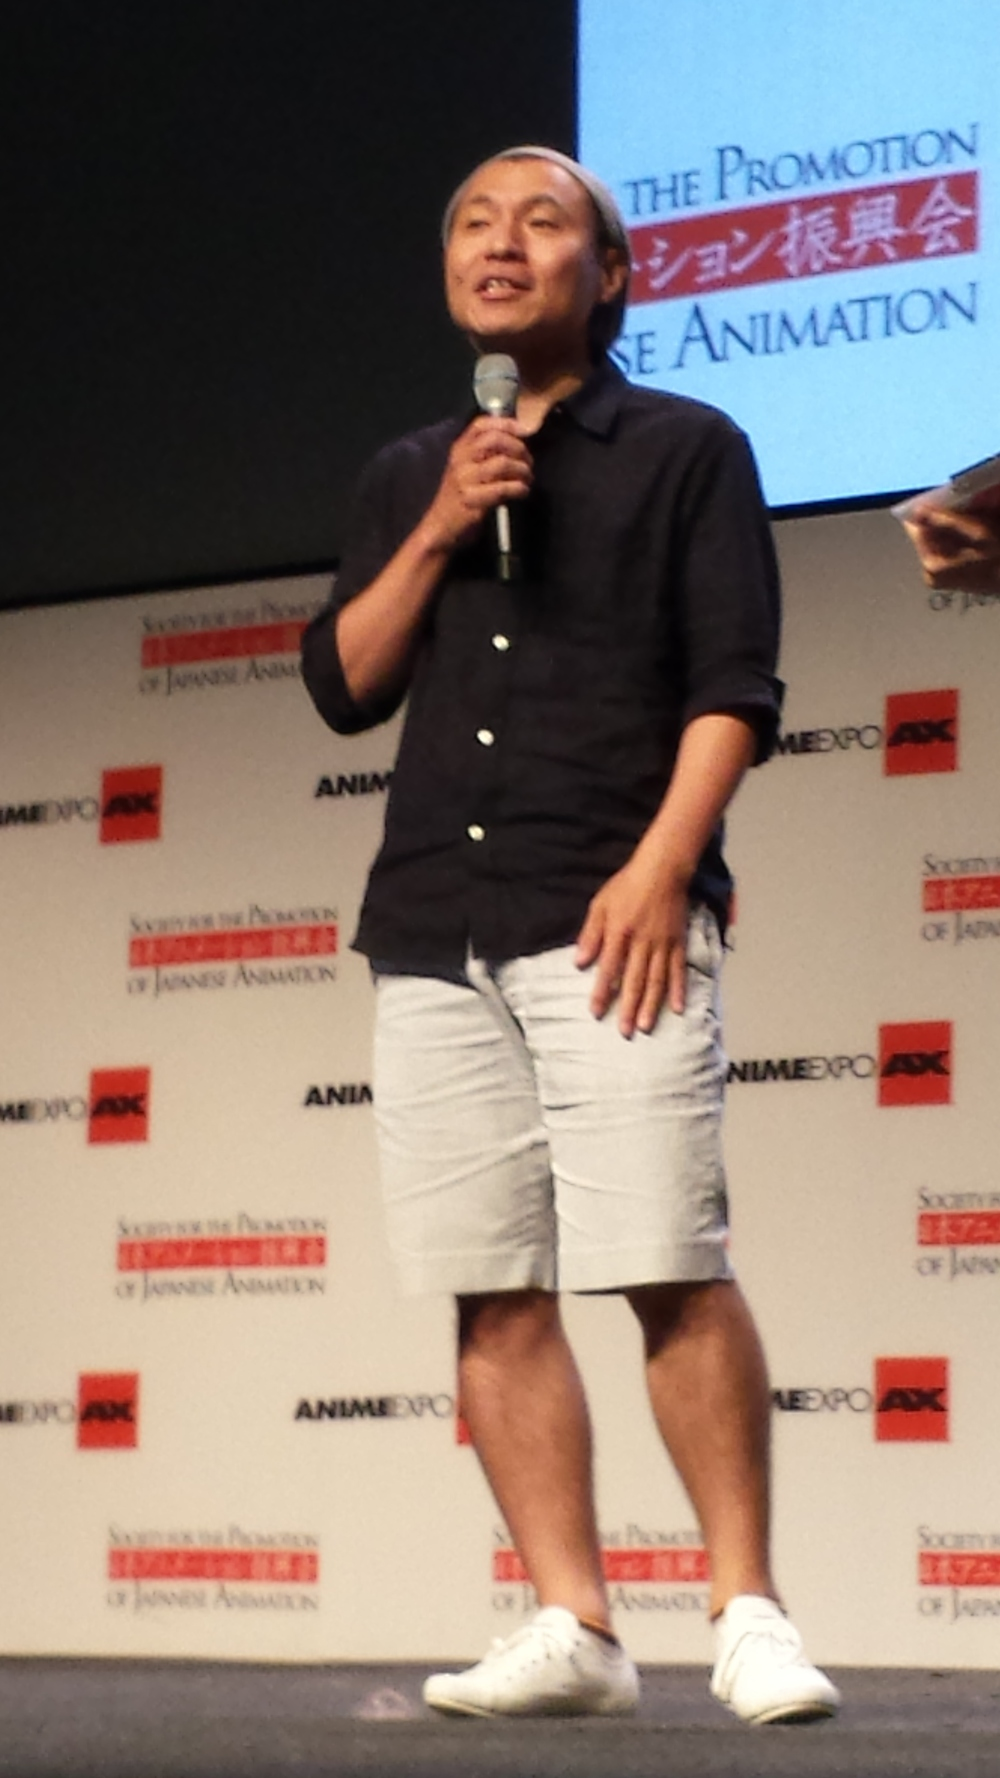 AnimeExpo 2013 - Masaaki Yuasa at the closing ceremonies